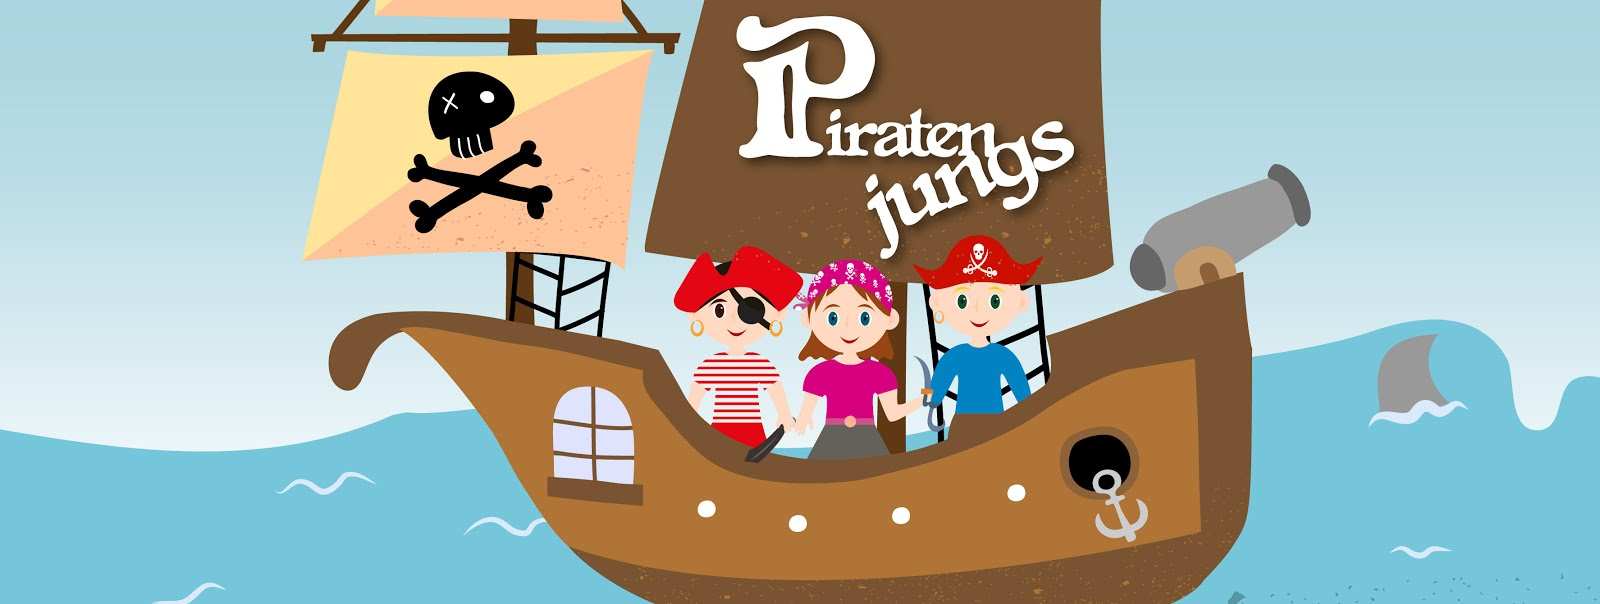 Piratenjungs